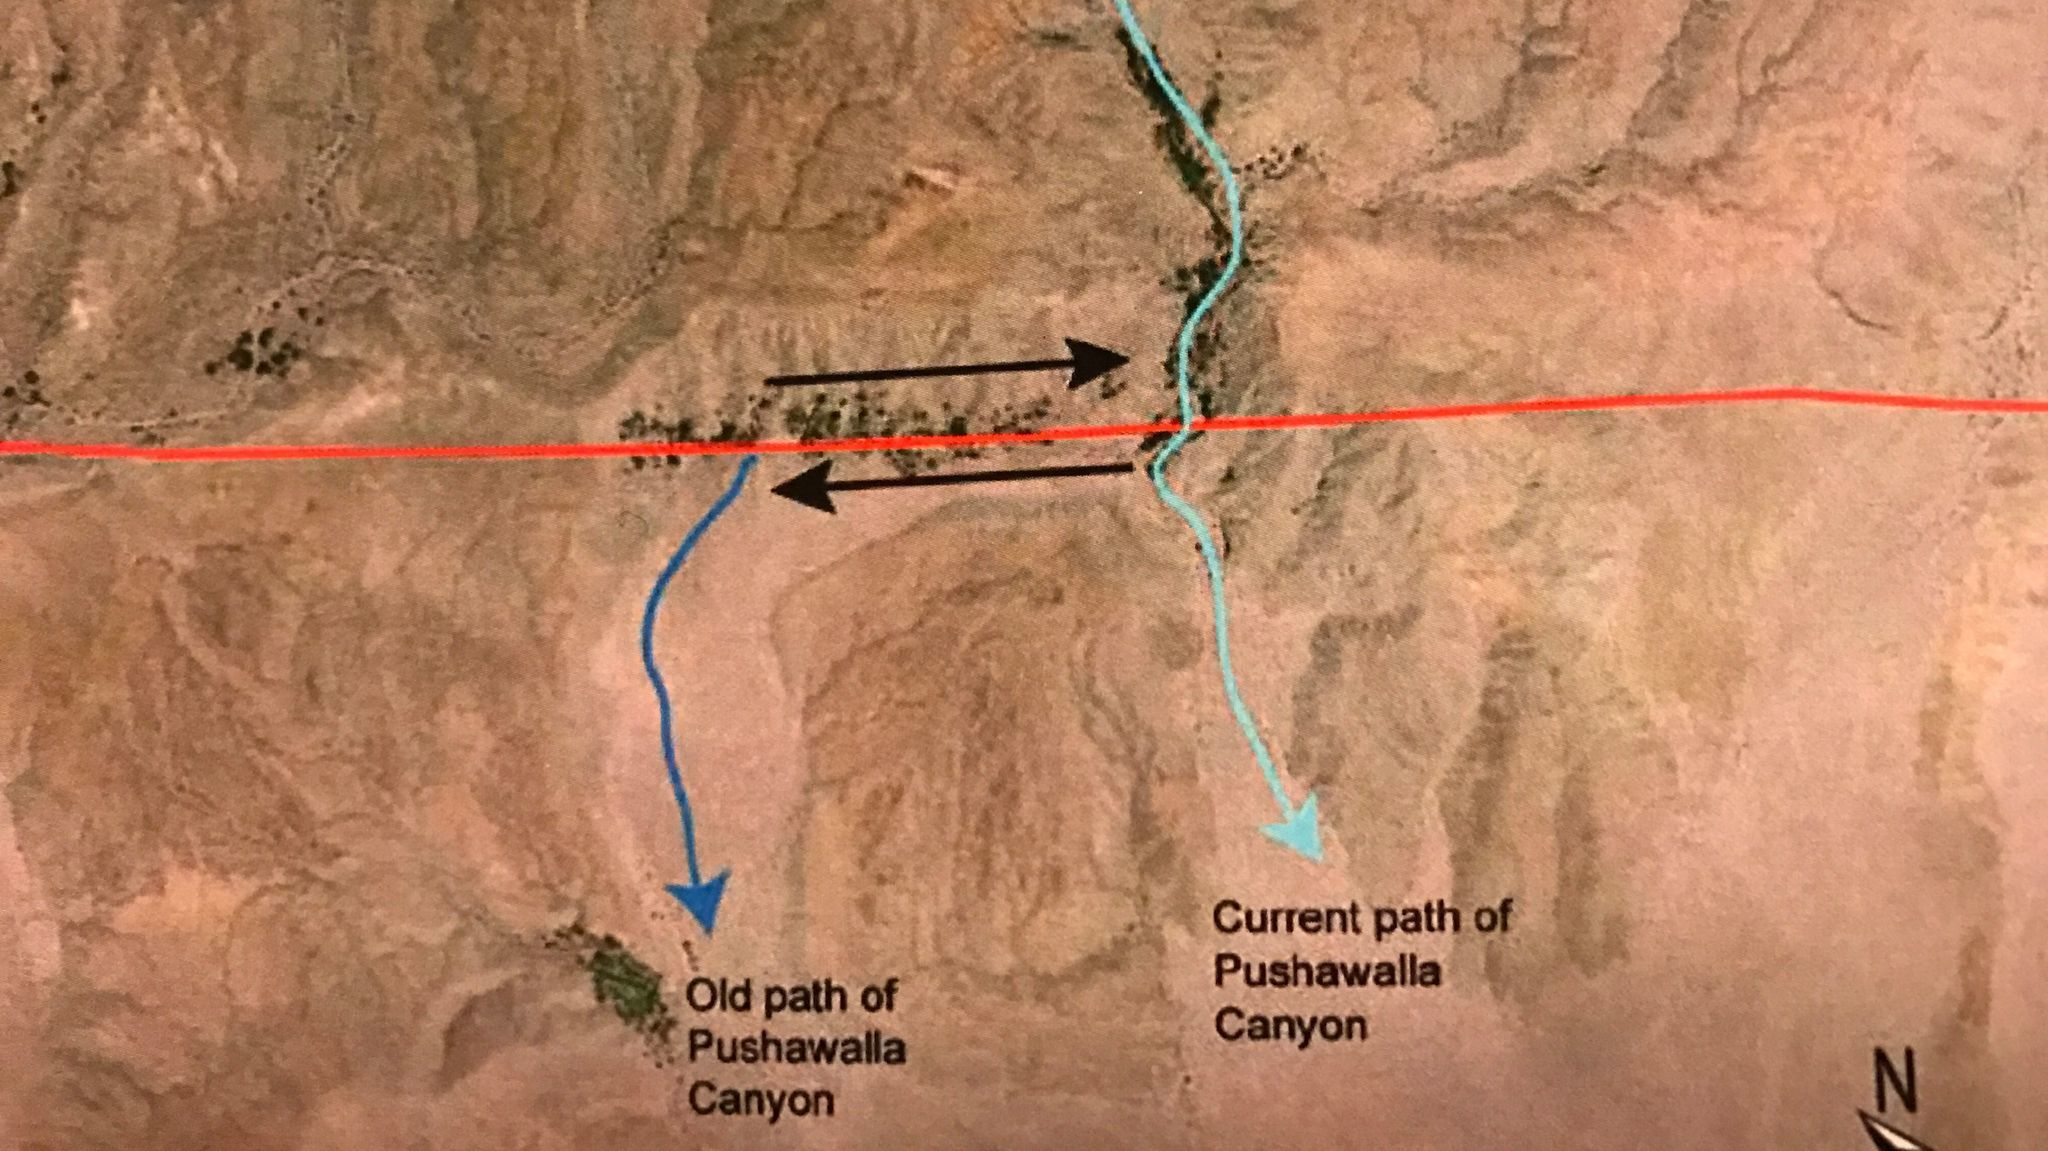 The old path of the Pushawalla Canyon was carved into Earth 32,000 years ago, according to U.S. Geological Survey research geologist Kate Scharer. Since then, the lower part of the canyon has been moving left, to the northwest, and has moved half a mile so far.